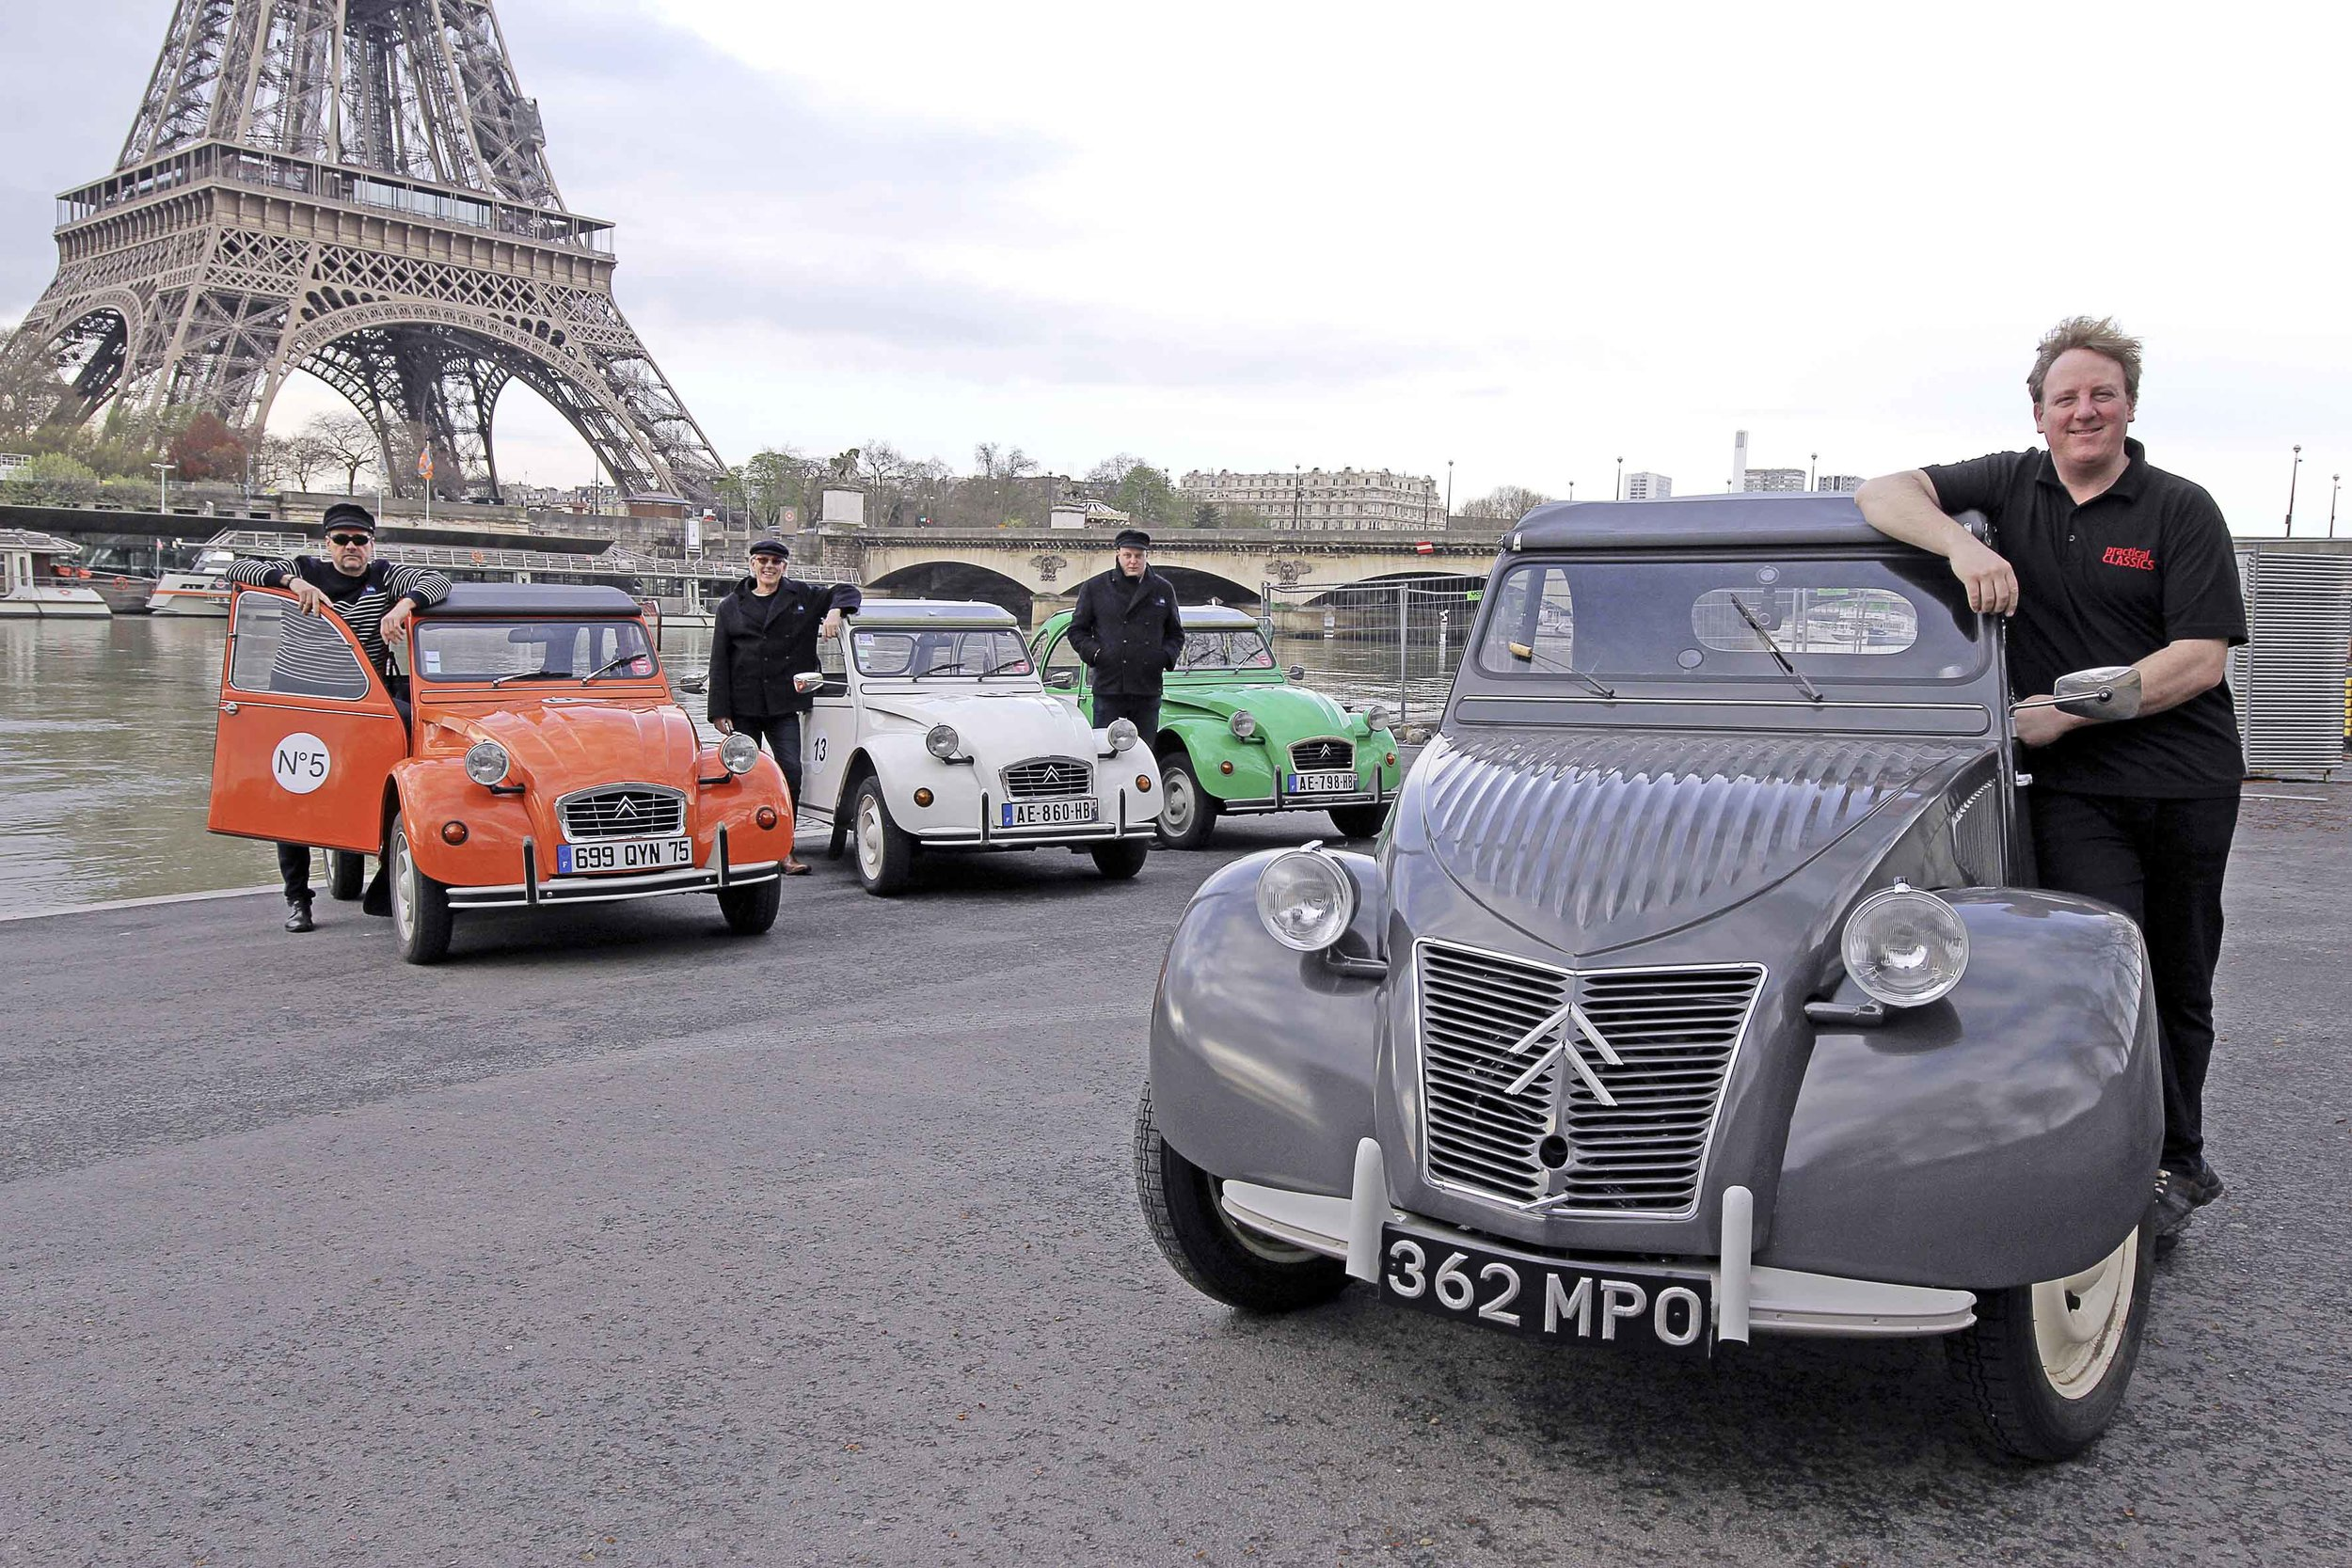 After a long and intense restoration - and an even longer road trip to Paris a few months ago - find out what happened when our James said farewell to his 2CV...